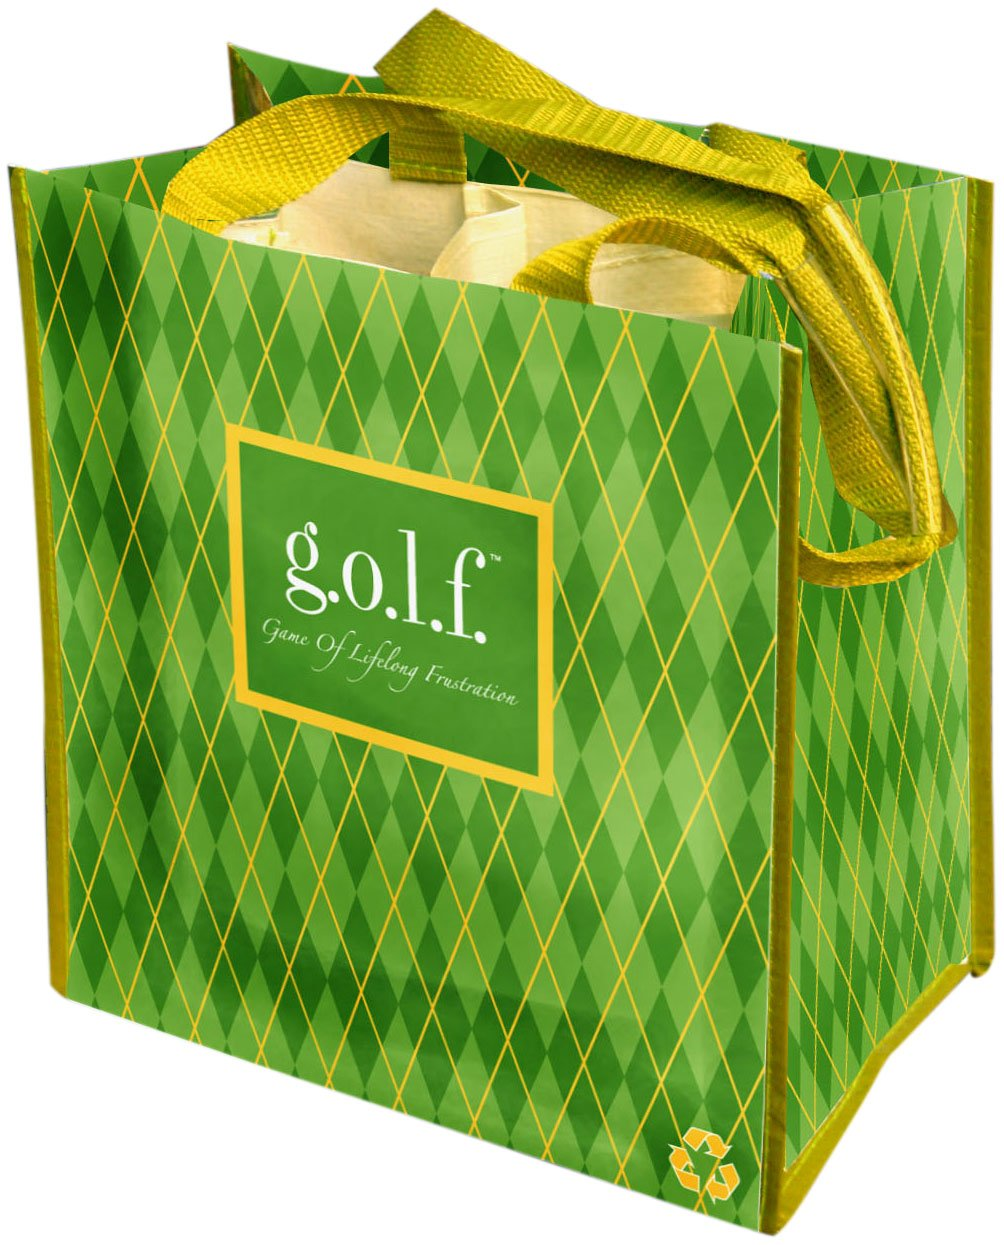 Fine Whines Party To Go Tote (100% Recycled Material), g.o.l.f. (Game of Lifelong Frustration)